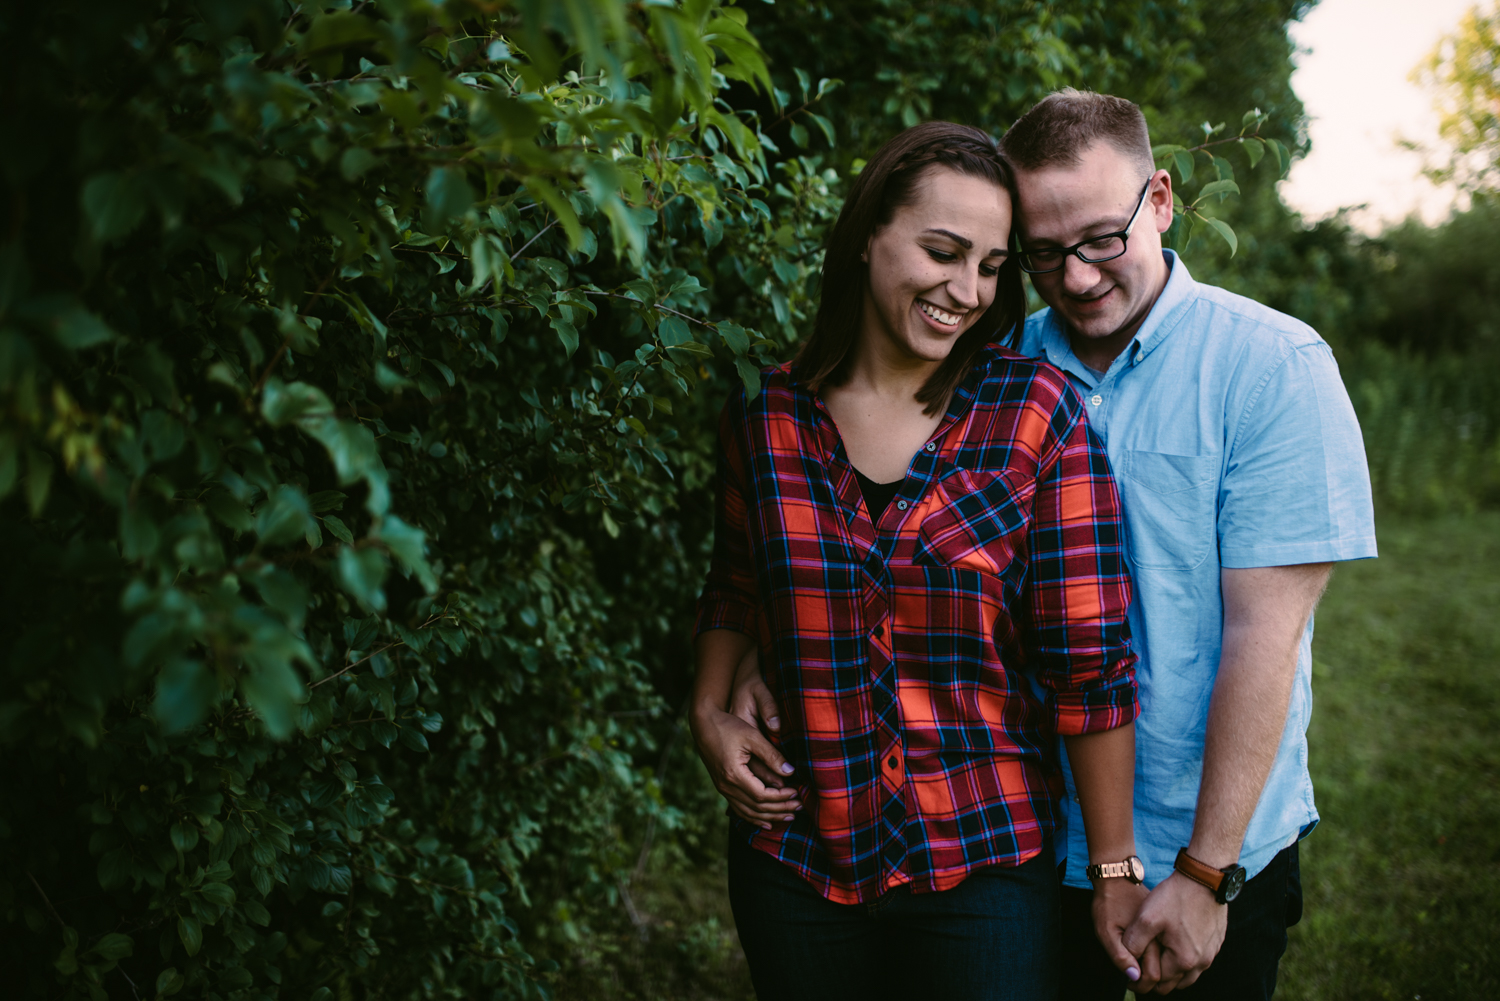 minneapolis-engagement-photographer-theo-wirth-park-1-10.jpg